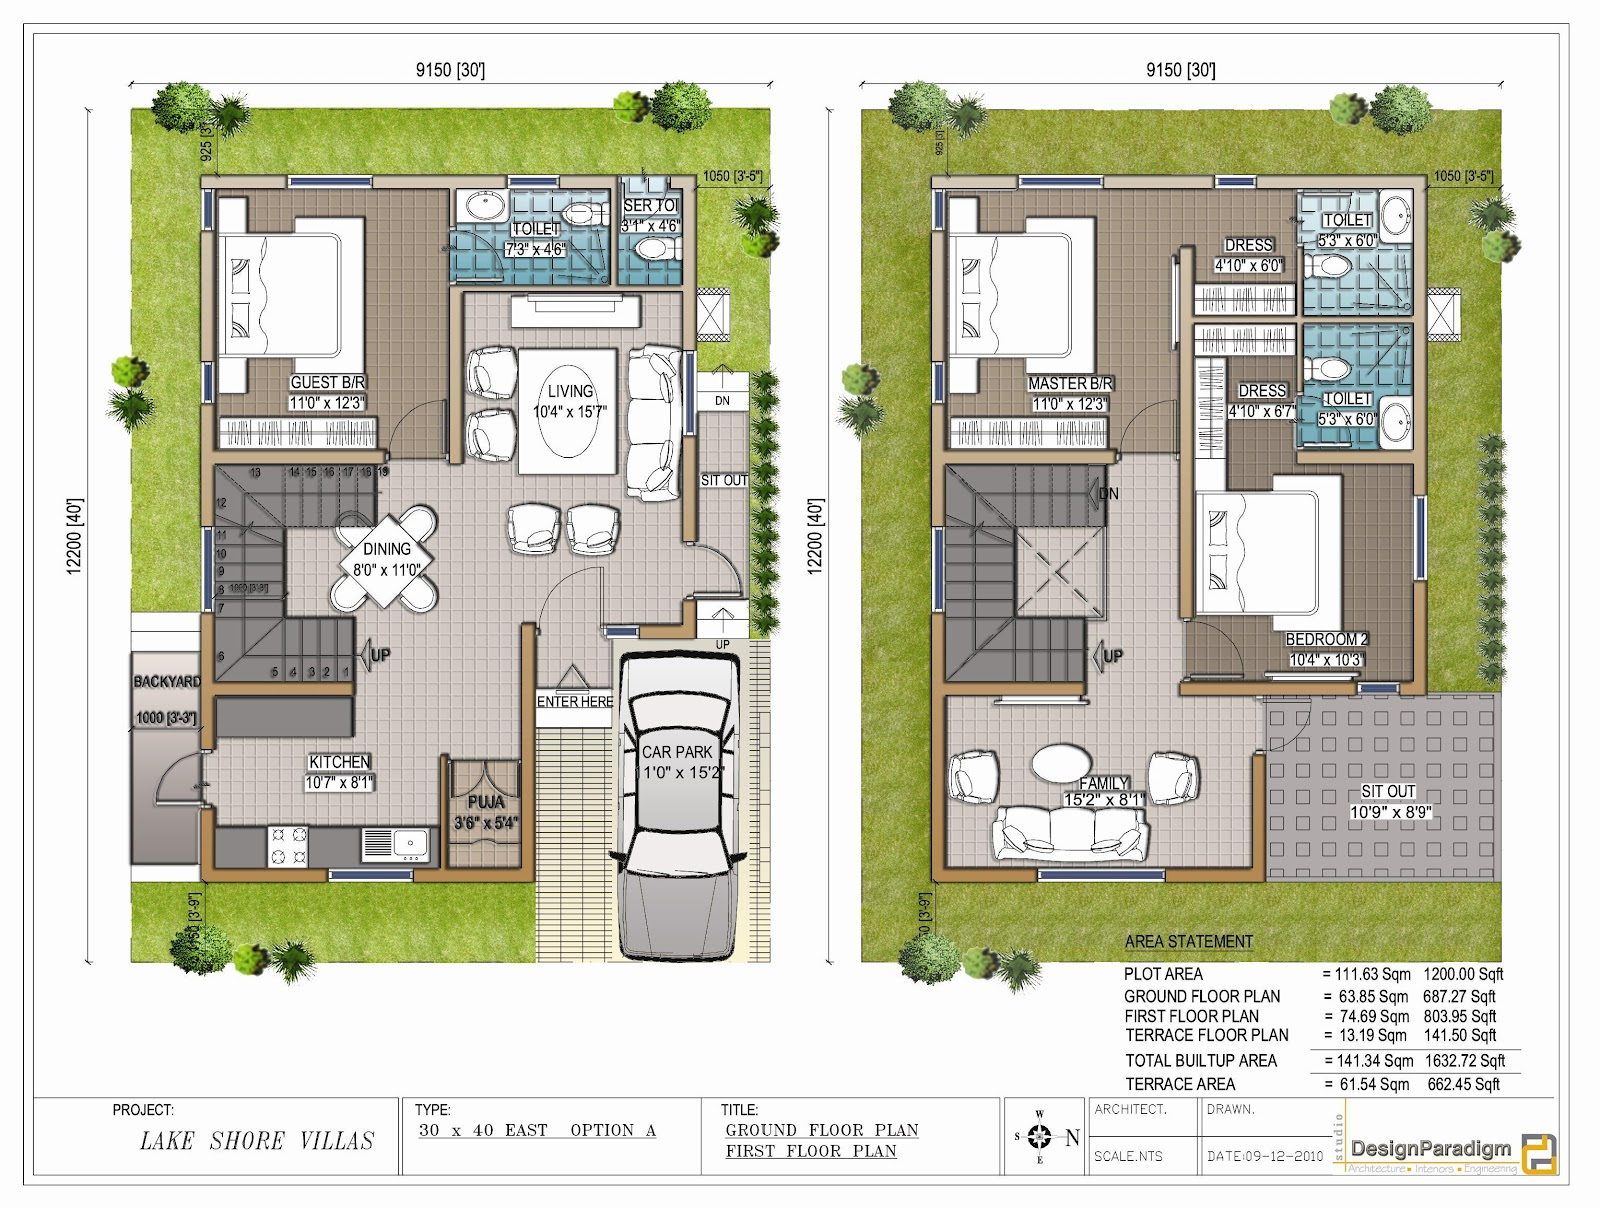 Lake shore villas designer duplex villas for sale in for 30x40 duplex house floor plans